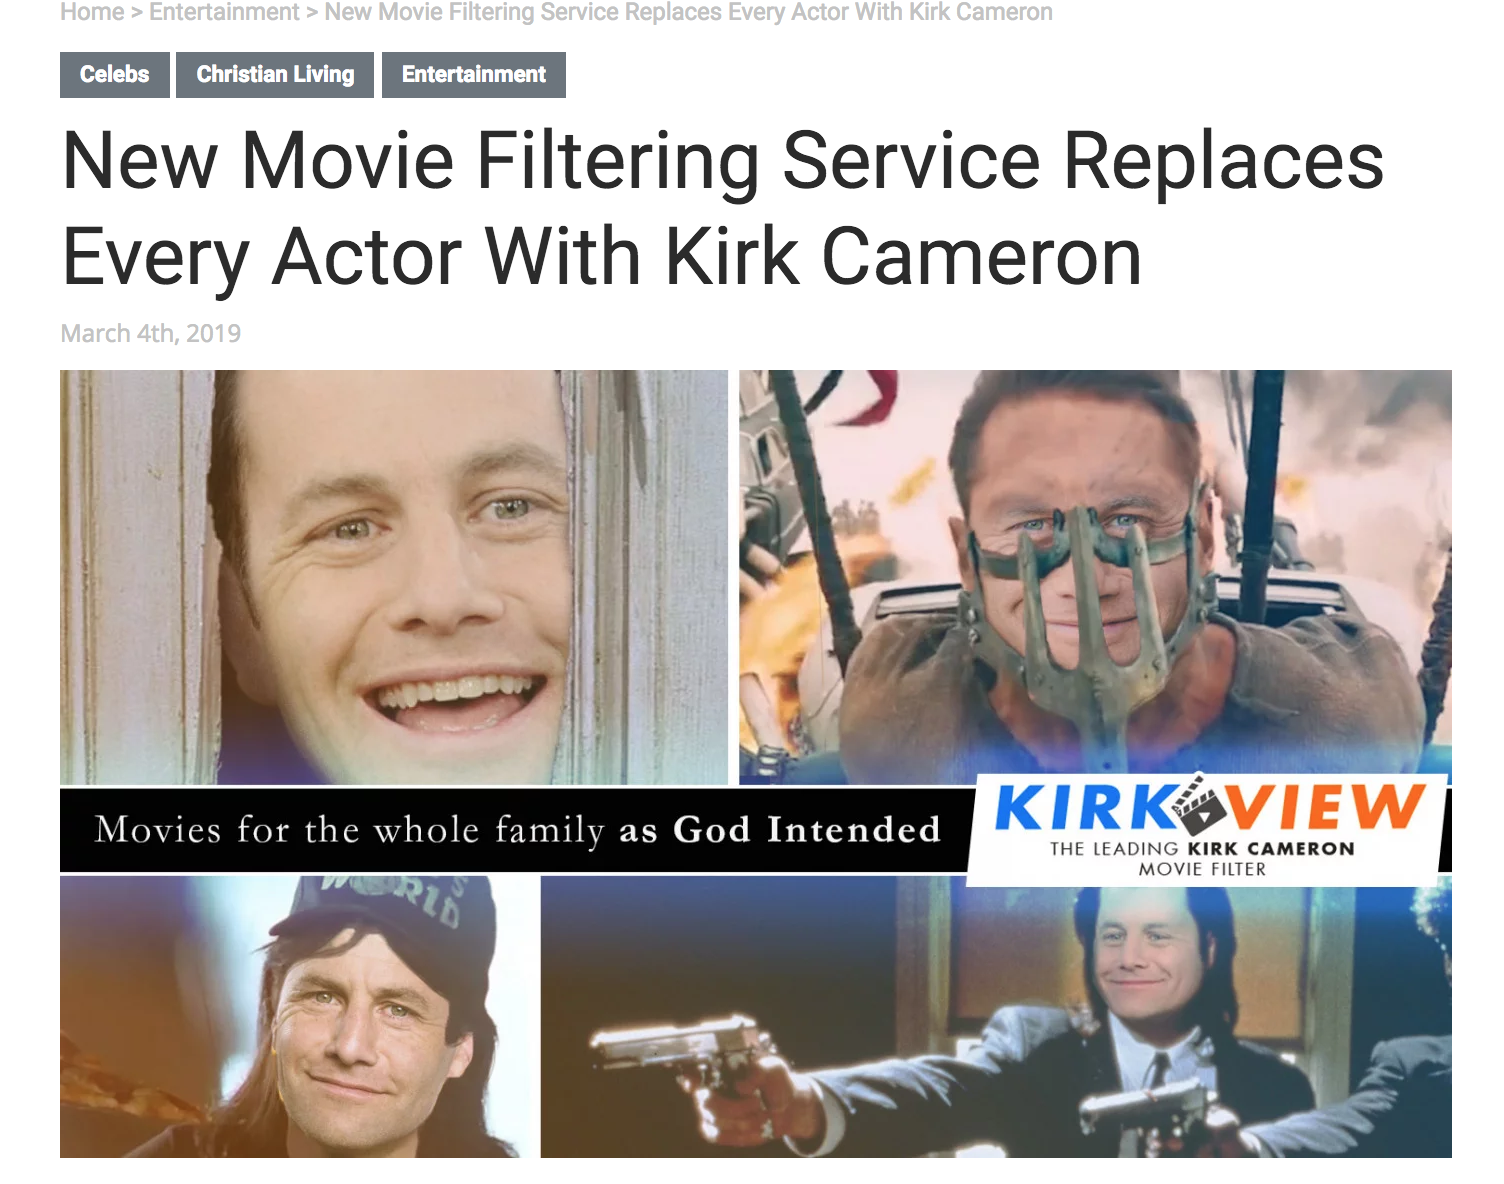 "HOLLYWOOD, CA—A new filtering service aims to make films more acceptable to a Christian audience by replacing every actor with Kirk Cameron.  KirkView, an upstart tech company founded ""by Christians, for Christians,"" is trying to help believers watch filthy movies by digitally imposing Cameron over all the actors in the film. Previous streaming services have replaced cuss words and suggestive scenes, but now Christians can watch movies the way God intended: by only seeing Kirk Cameron in every role.  The service has levels ranging from ""baby Christian,"" where Cameron only replaces a few of the actors, to ""Holy man of God,"" where Cameron replaces absolutely everybody. ( more here.)"